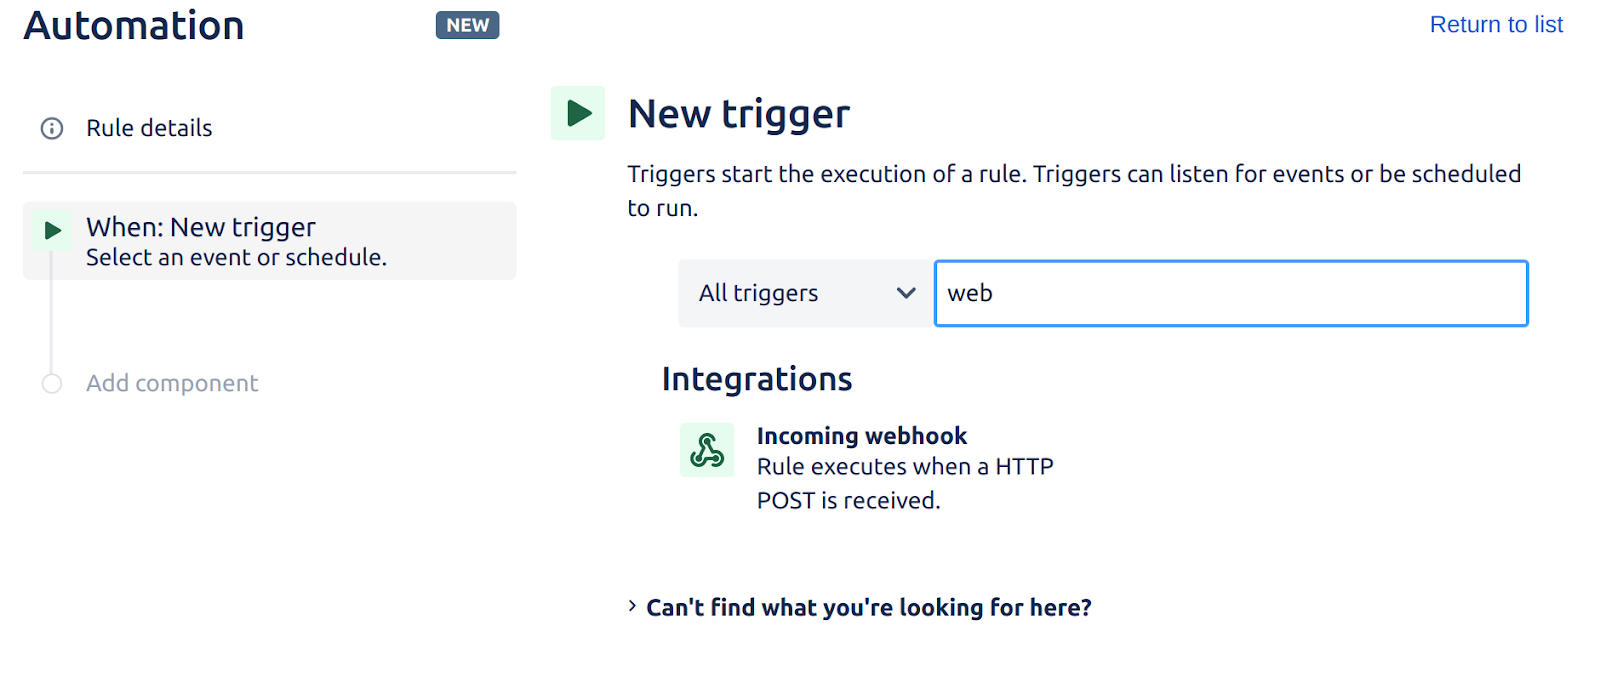 Jira's automation interface showing the webhook trigger